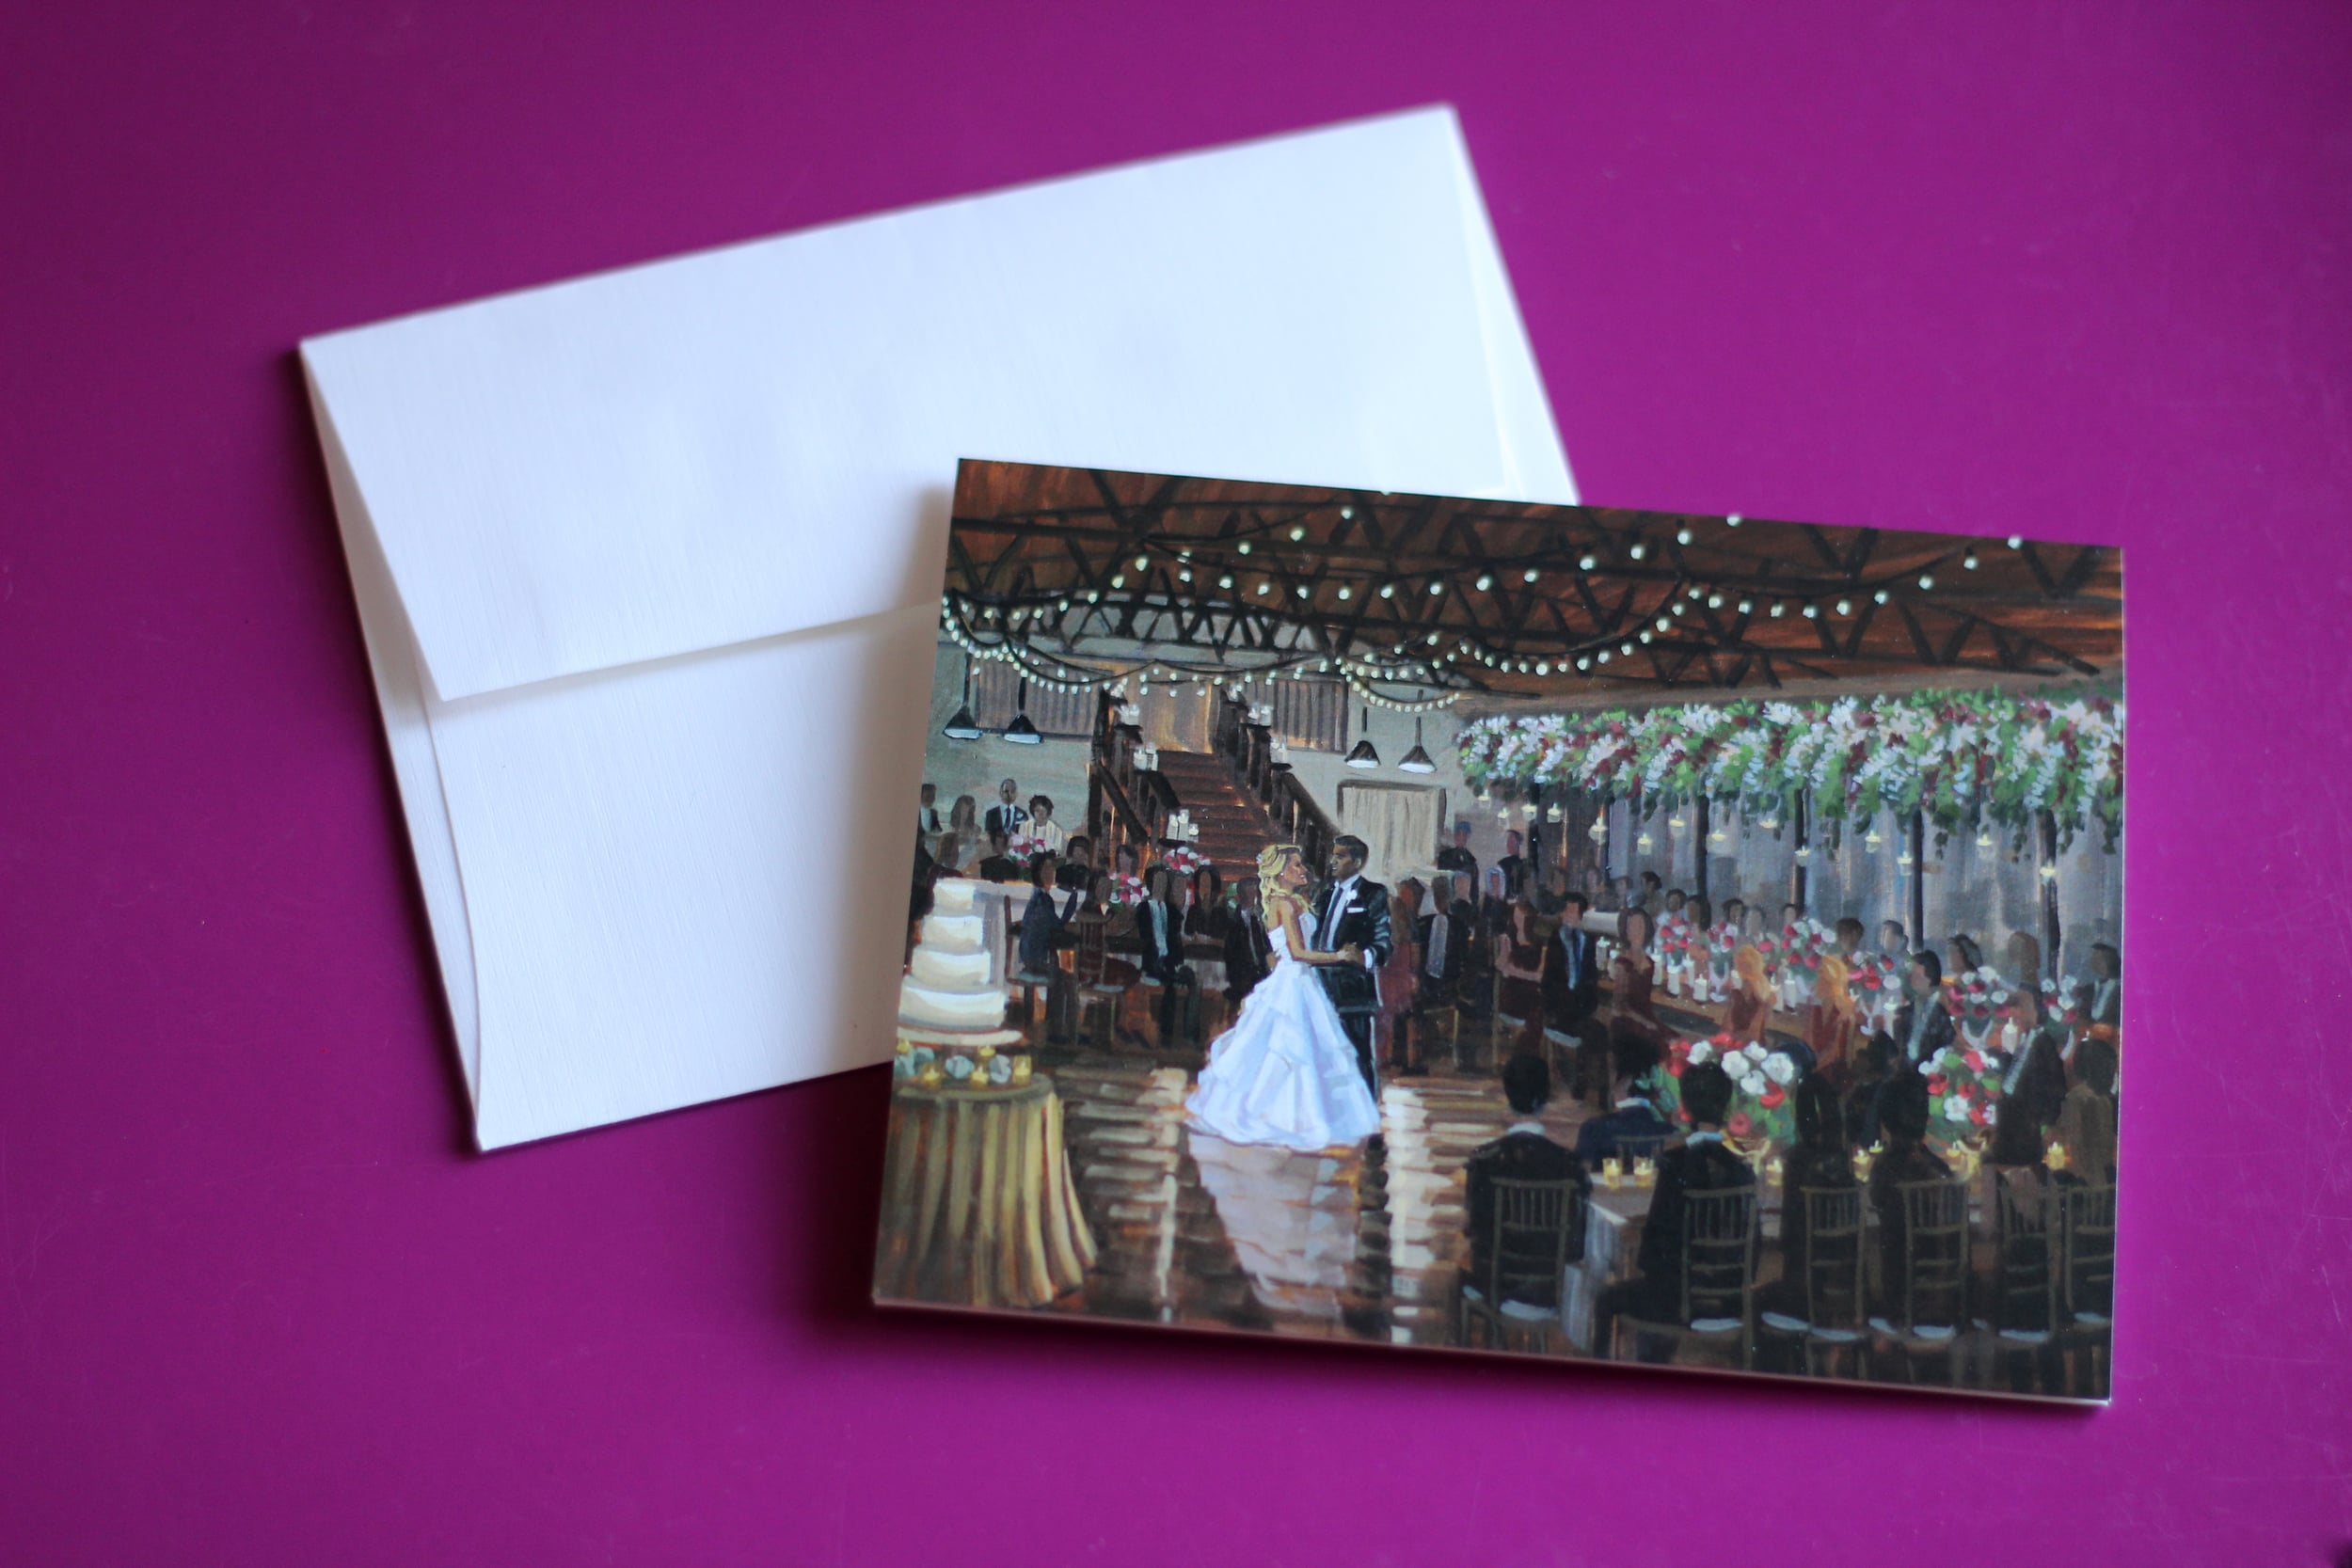 Lauren + Andrew's stationery featuring their live wedding painting at Atlanta's Summerour Studio.